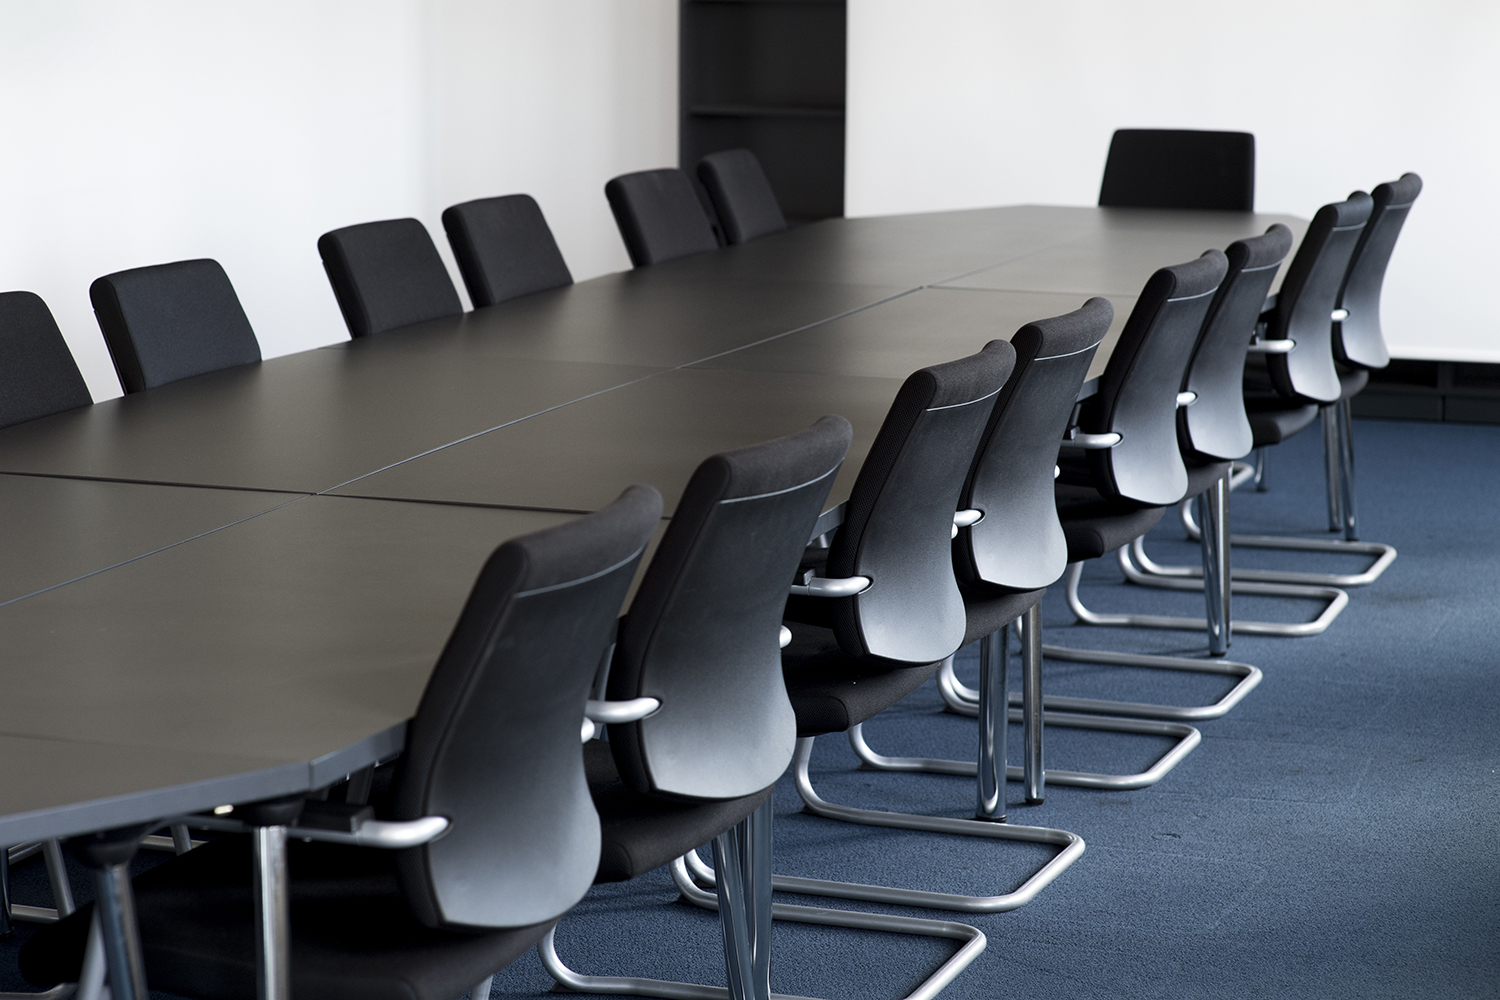 An image of a conference table and black chairs around it in a meeting room